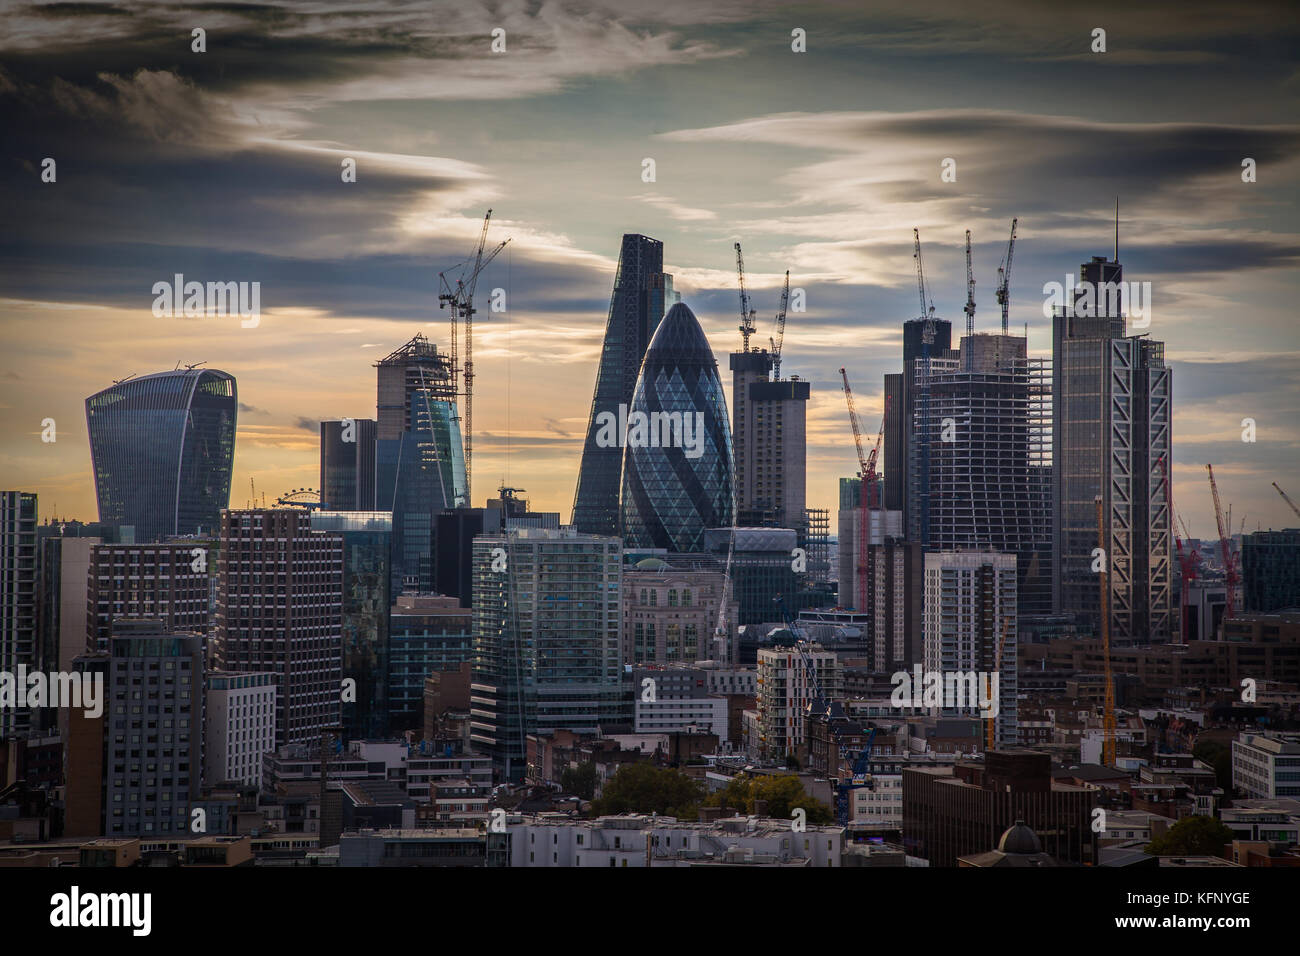 City of London inc The Scalpel (under construction) Heron Tower, The Gherkin/St Marys Axe, The Cheesegrater/Ledenhall, - Stock Image